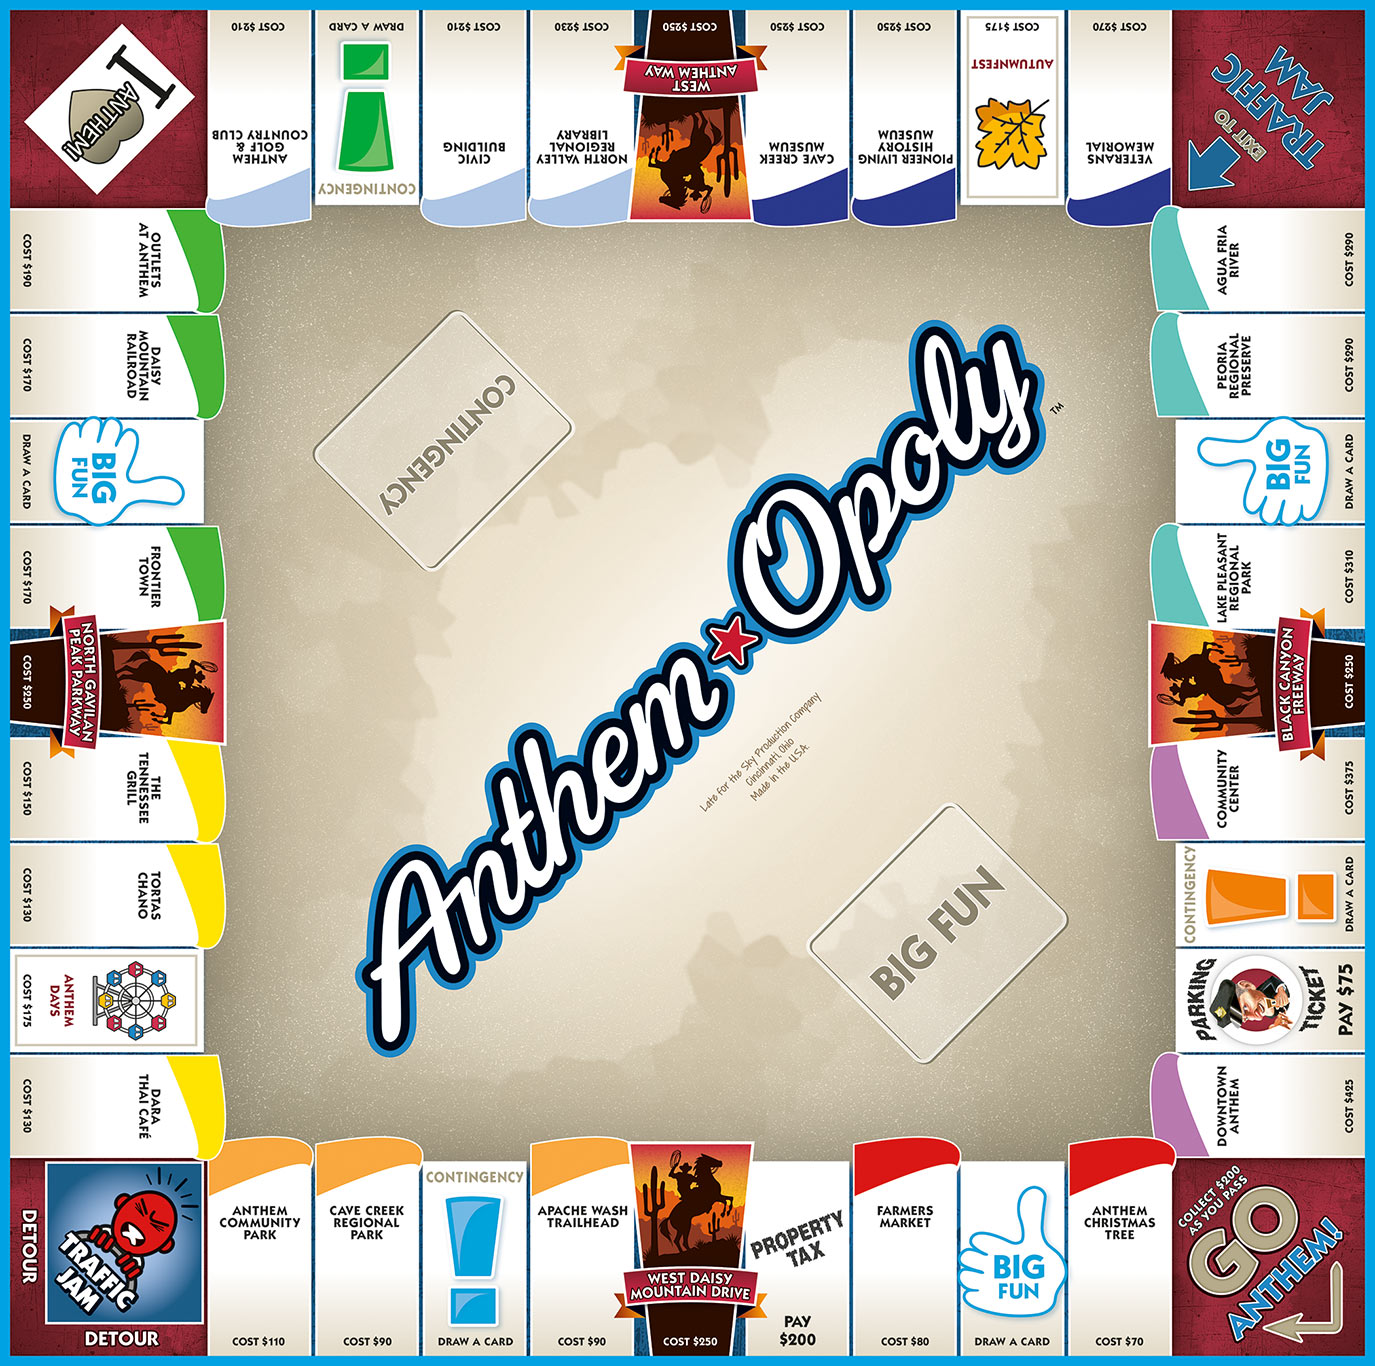 ANTHEM-OPOLY Board Game